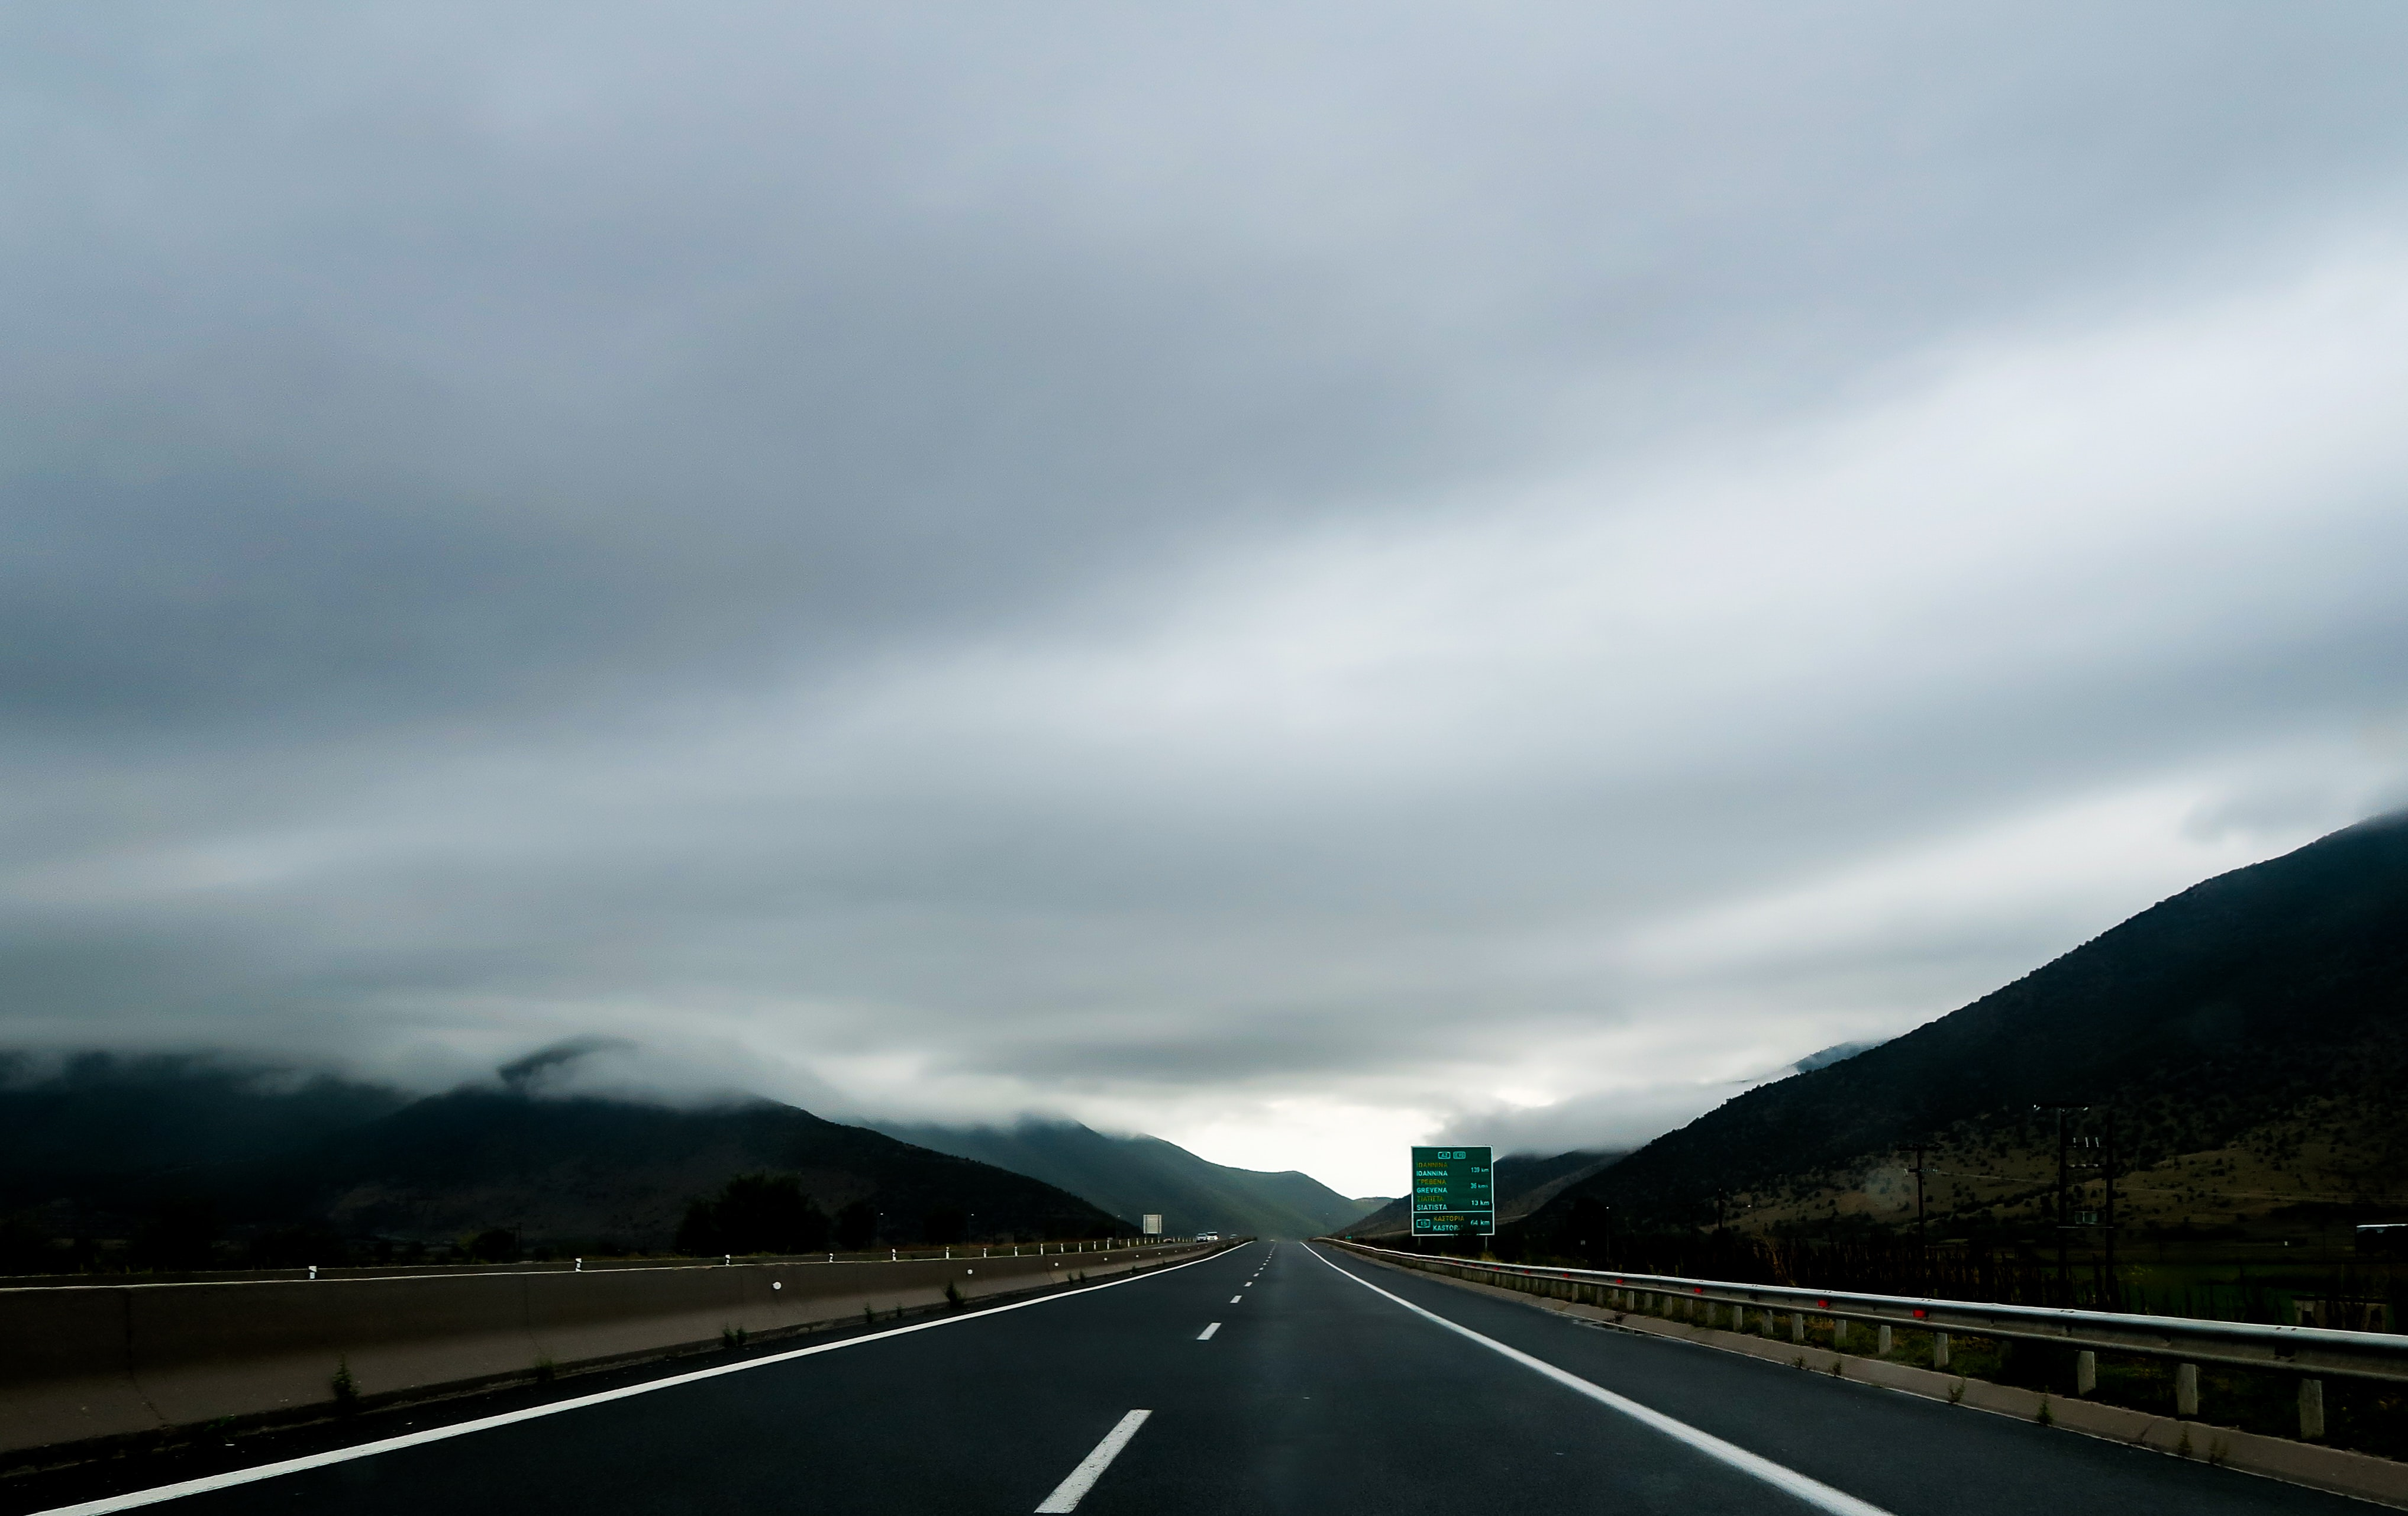 A cloudy overcast on top of a road in Egnatia, Albania